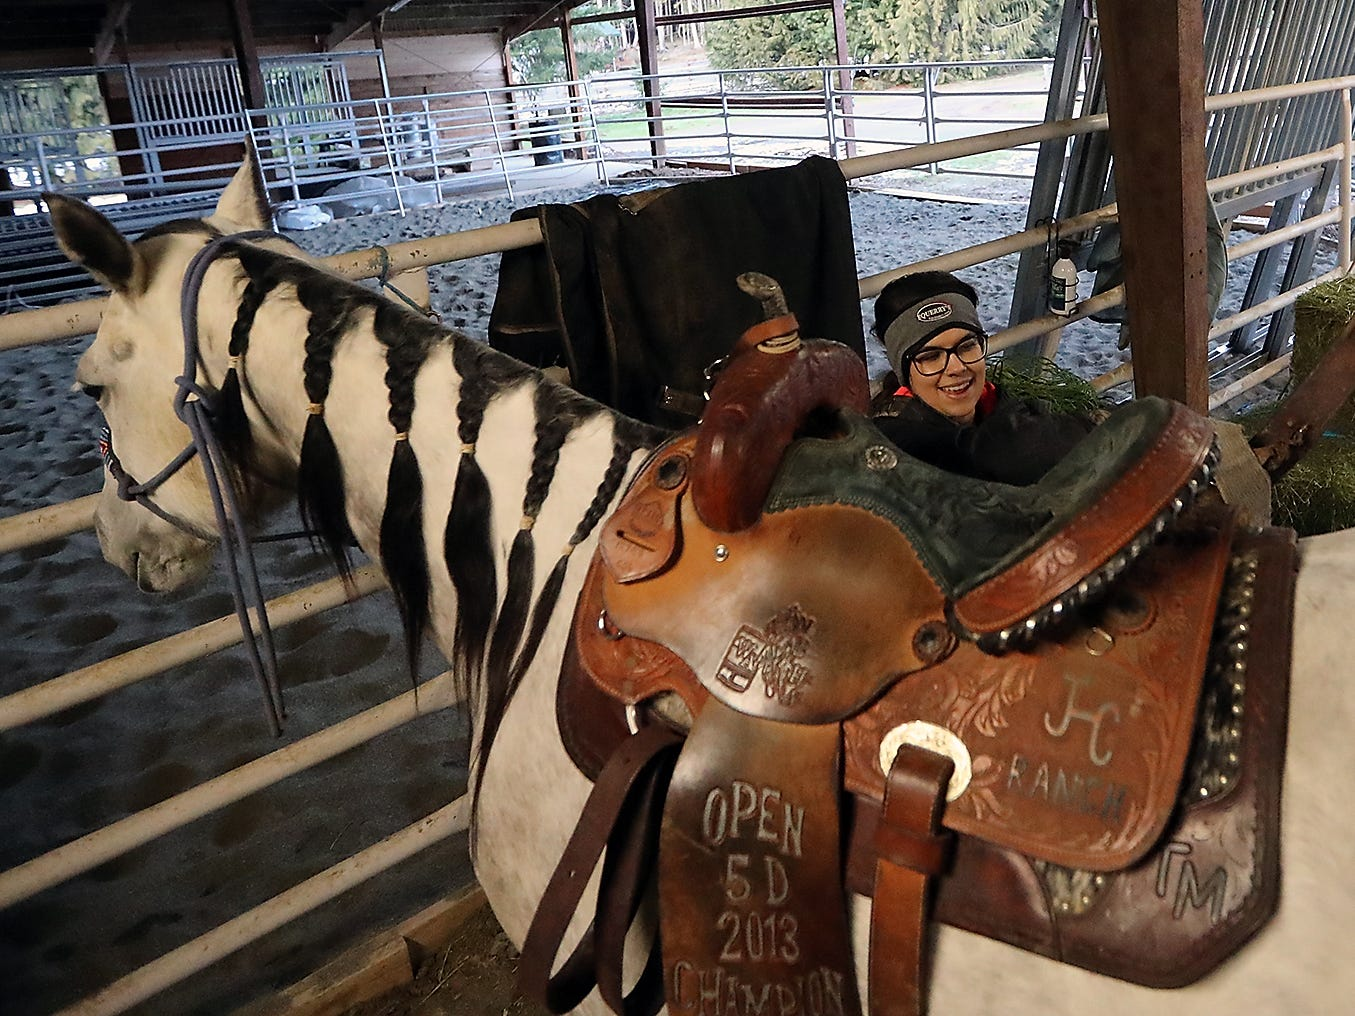 Teresa Morrell saddles Pearl as she gets ready to work with her horses at the ARD Ranch in Silverdale on Thursday, February 7, 2019.